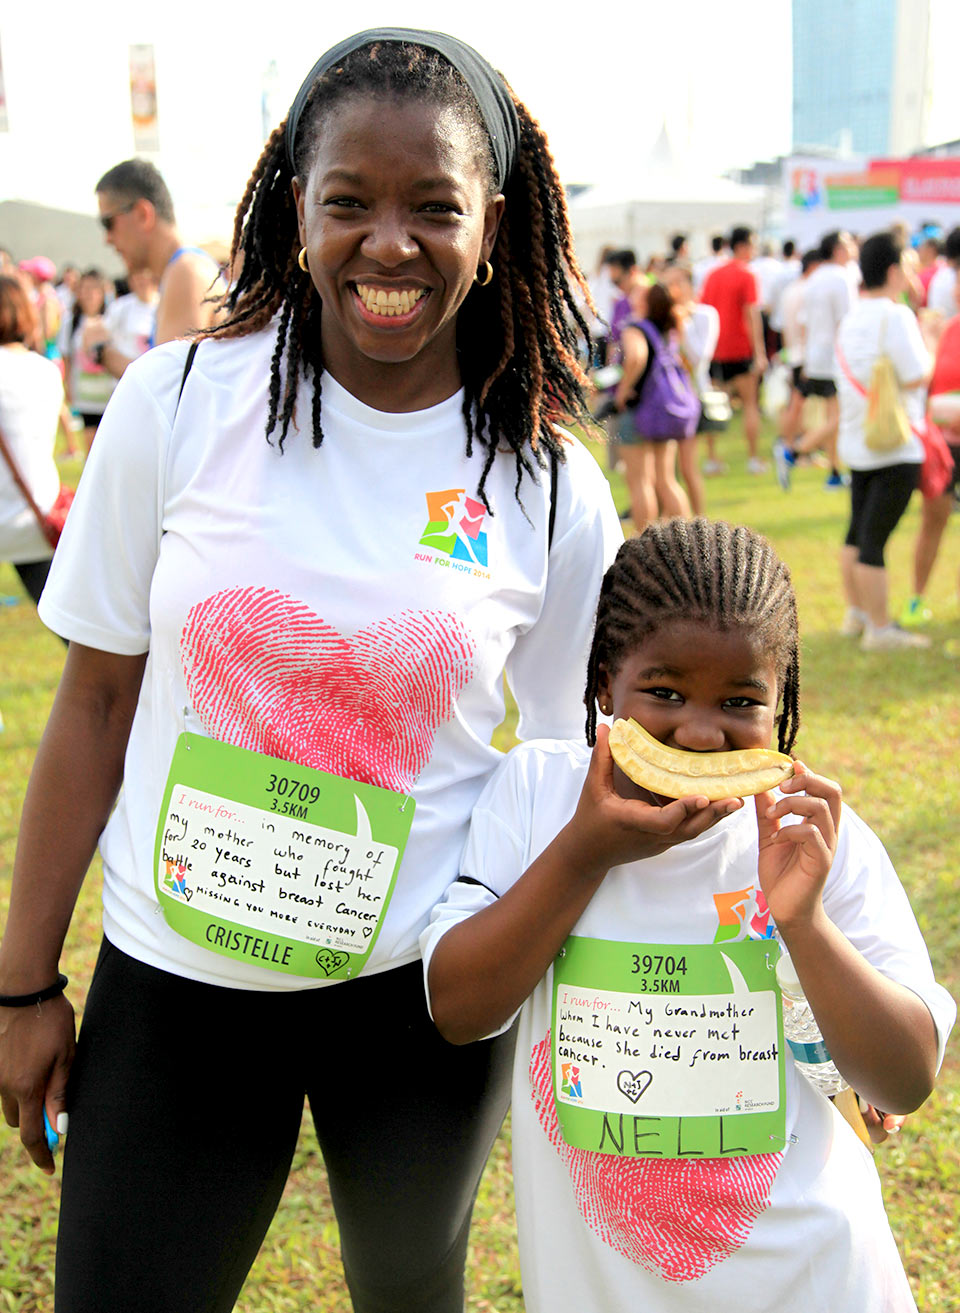 Run For Hope 2014: 11,000 Ran For A Cancer-Free Tomorrow